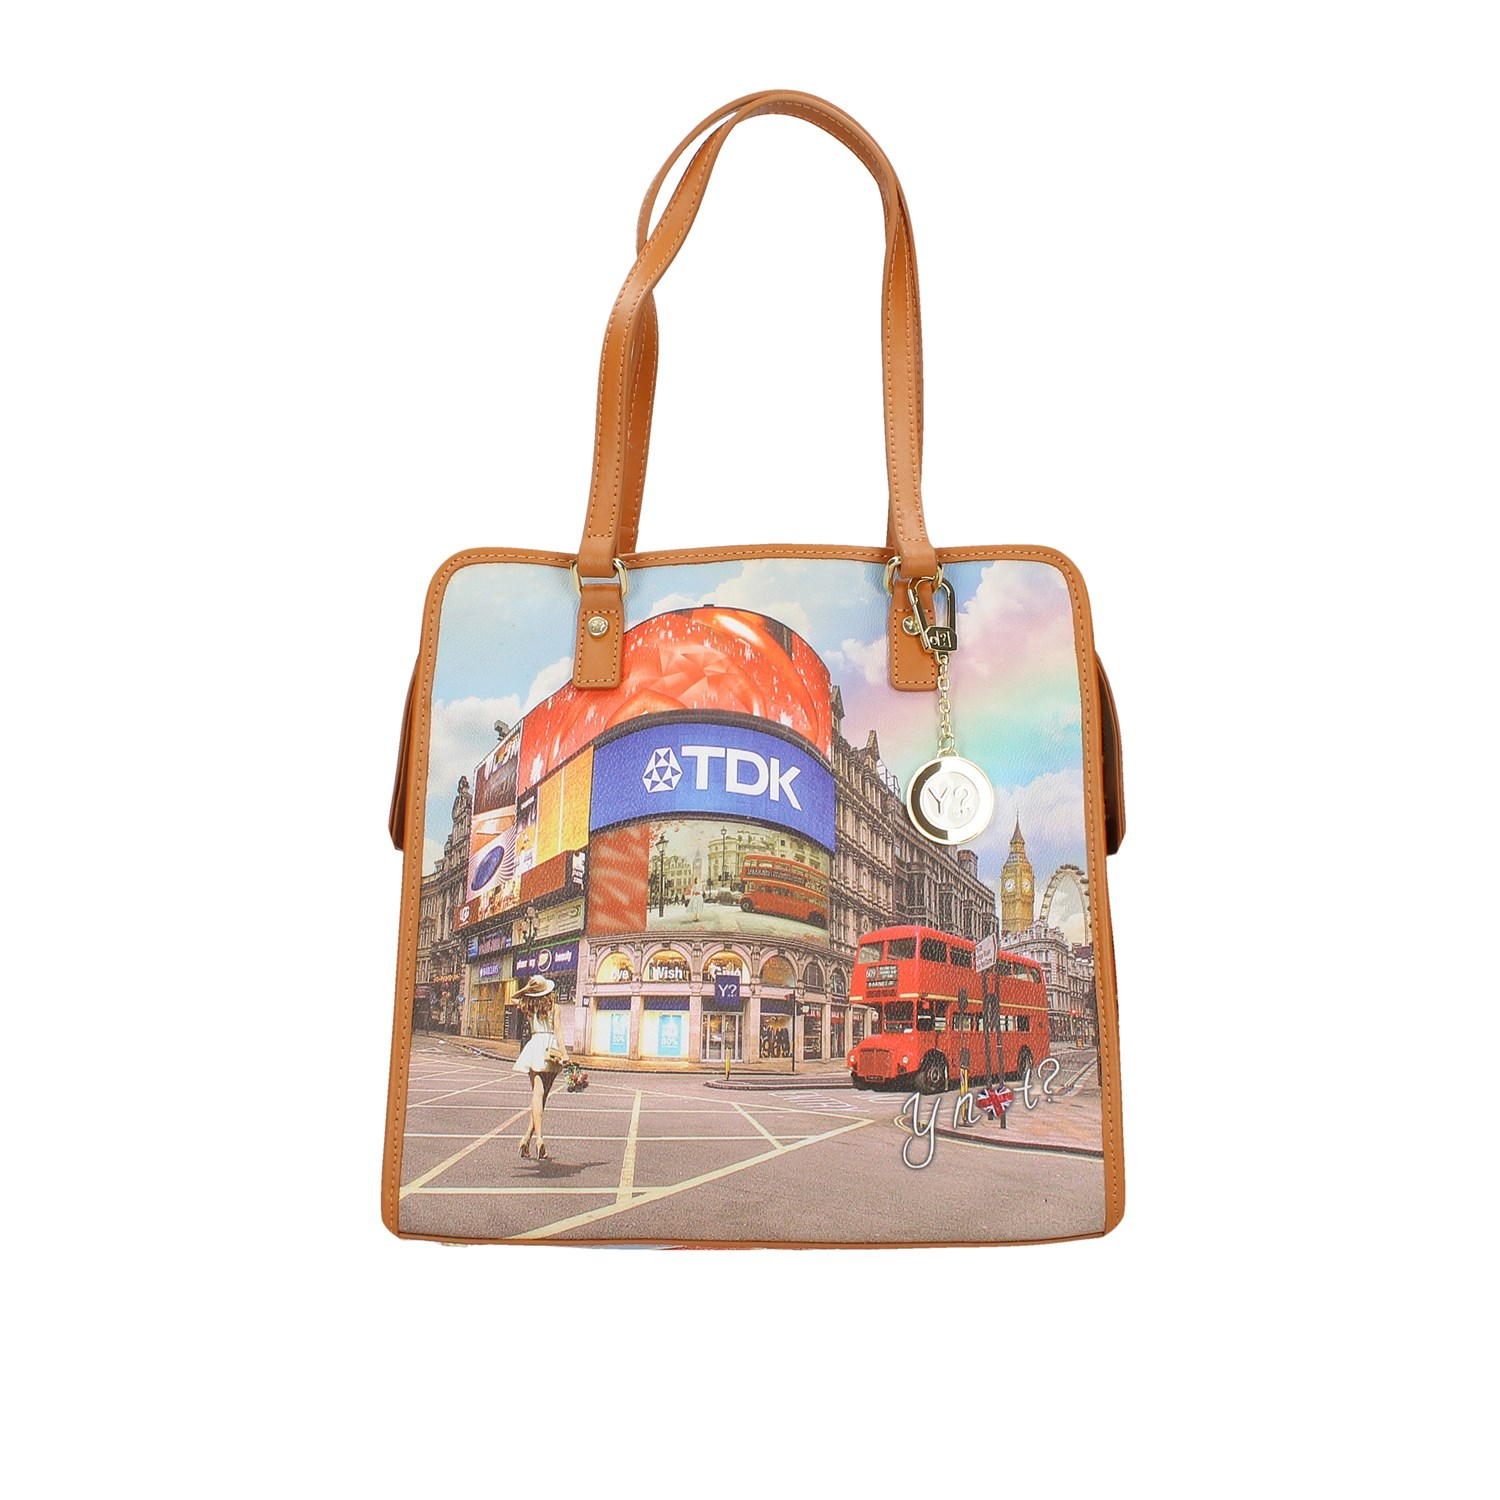 cab2b1dfa1 Borsa A Spalla Ynot? Donna - Princess In London - Vendita Borsa A ...